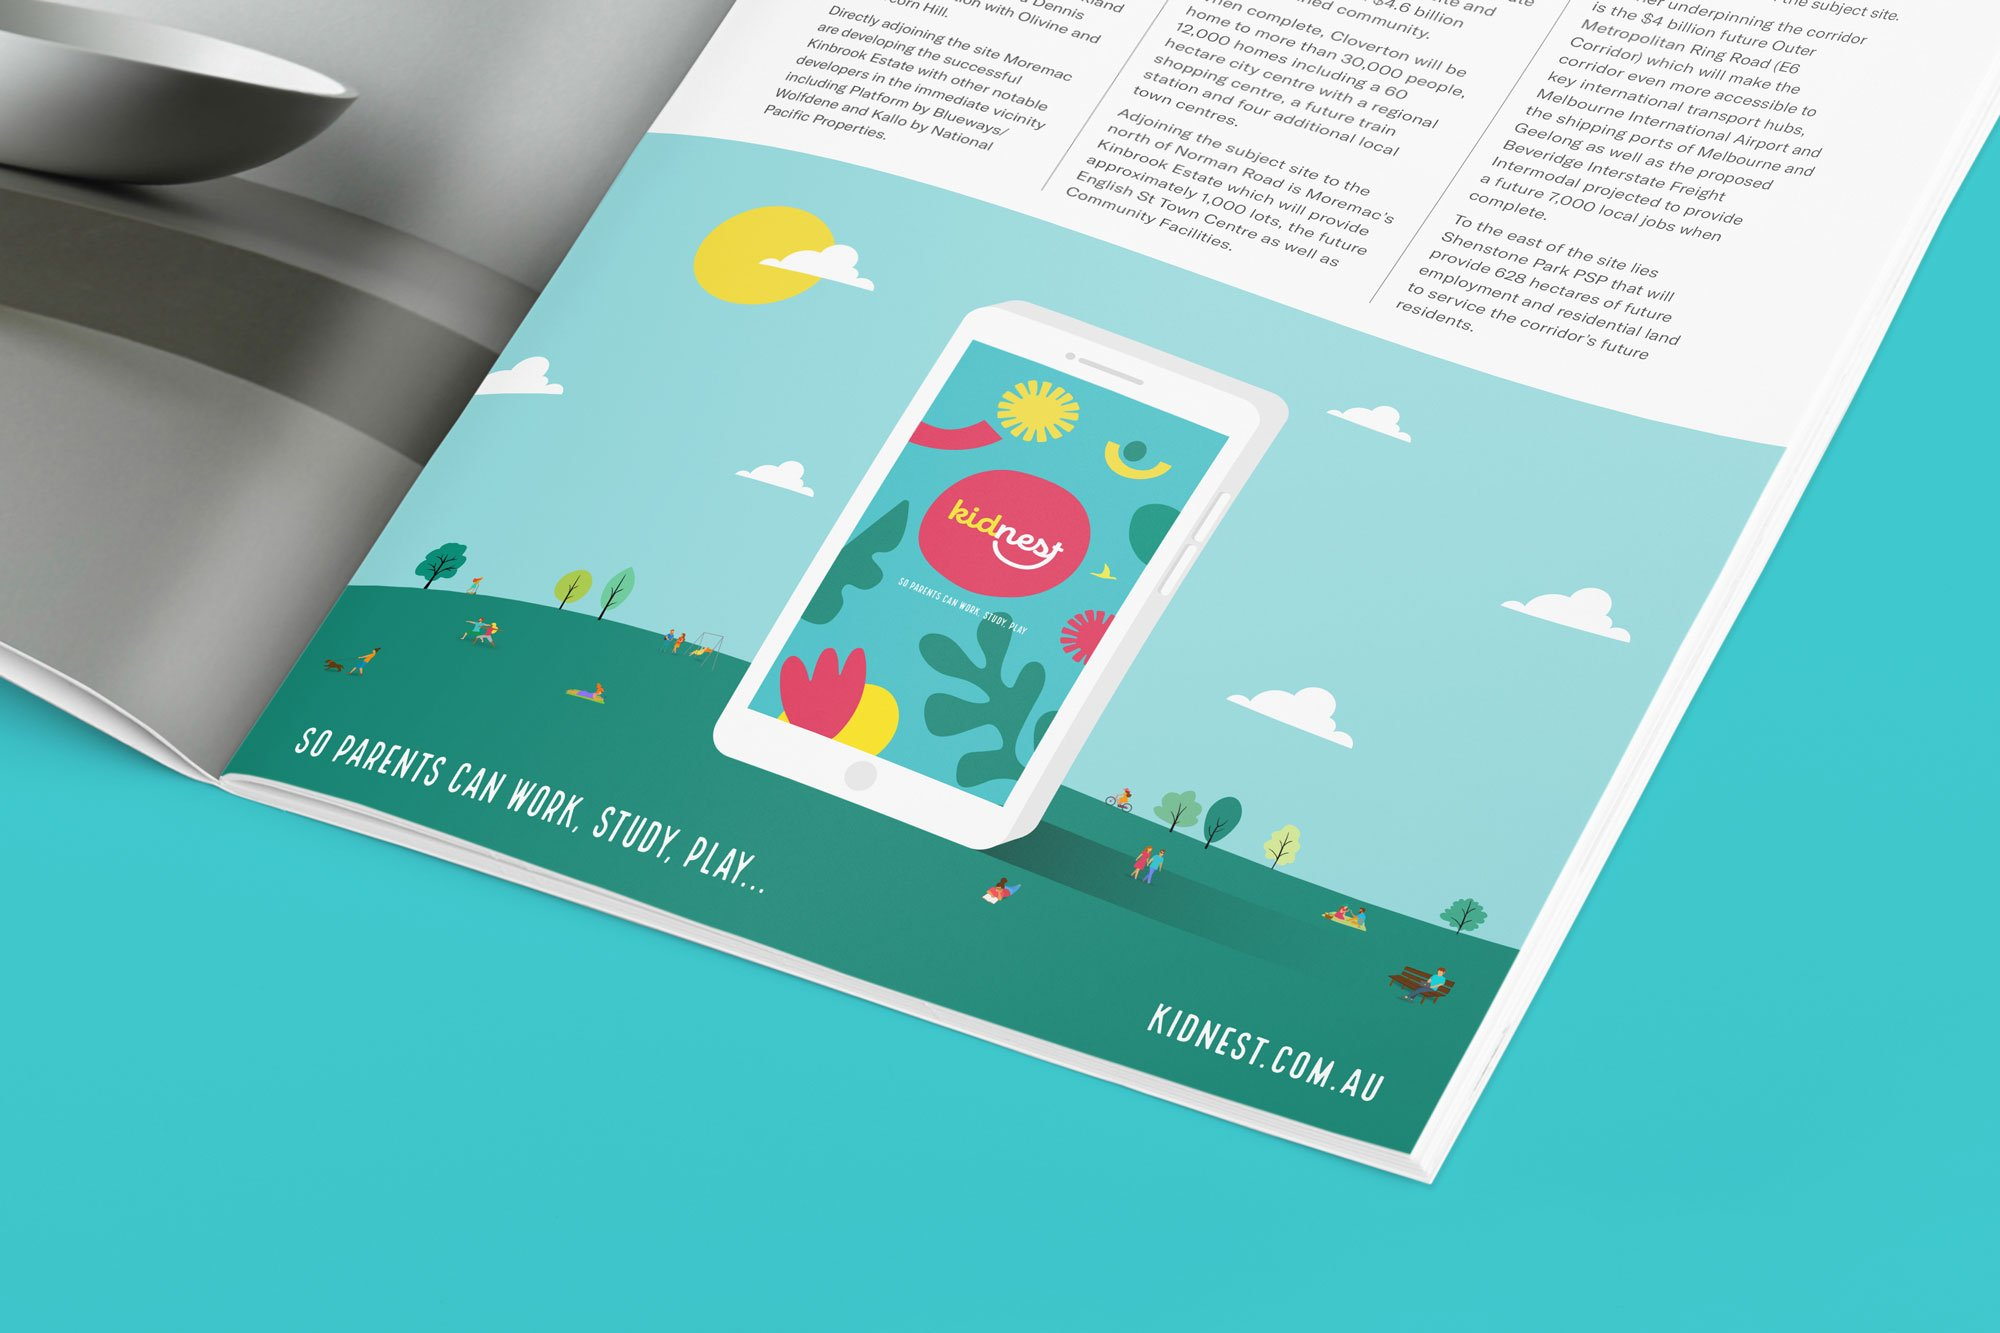 Kidnest magazine ad design